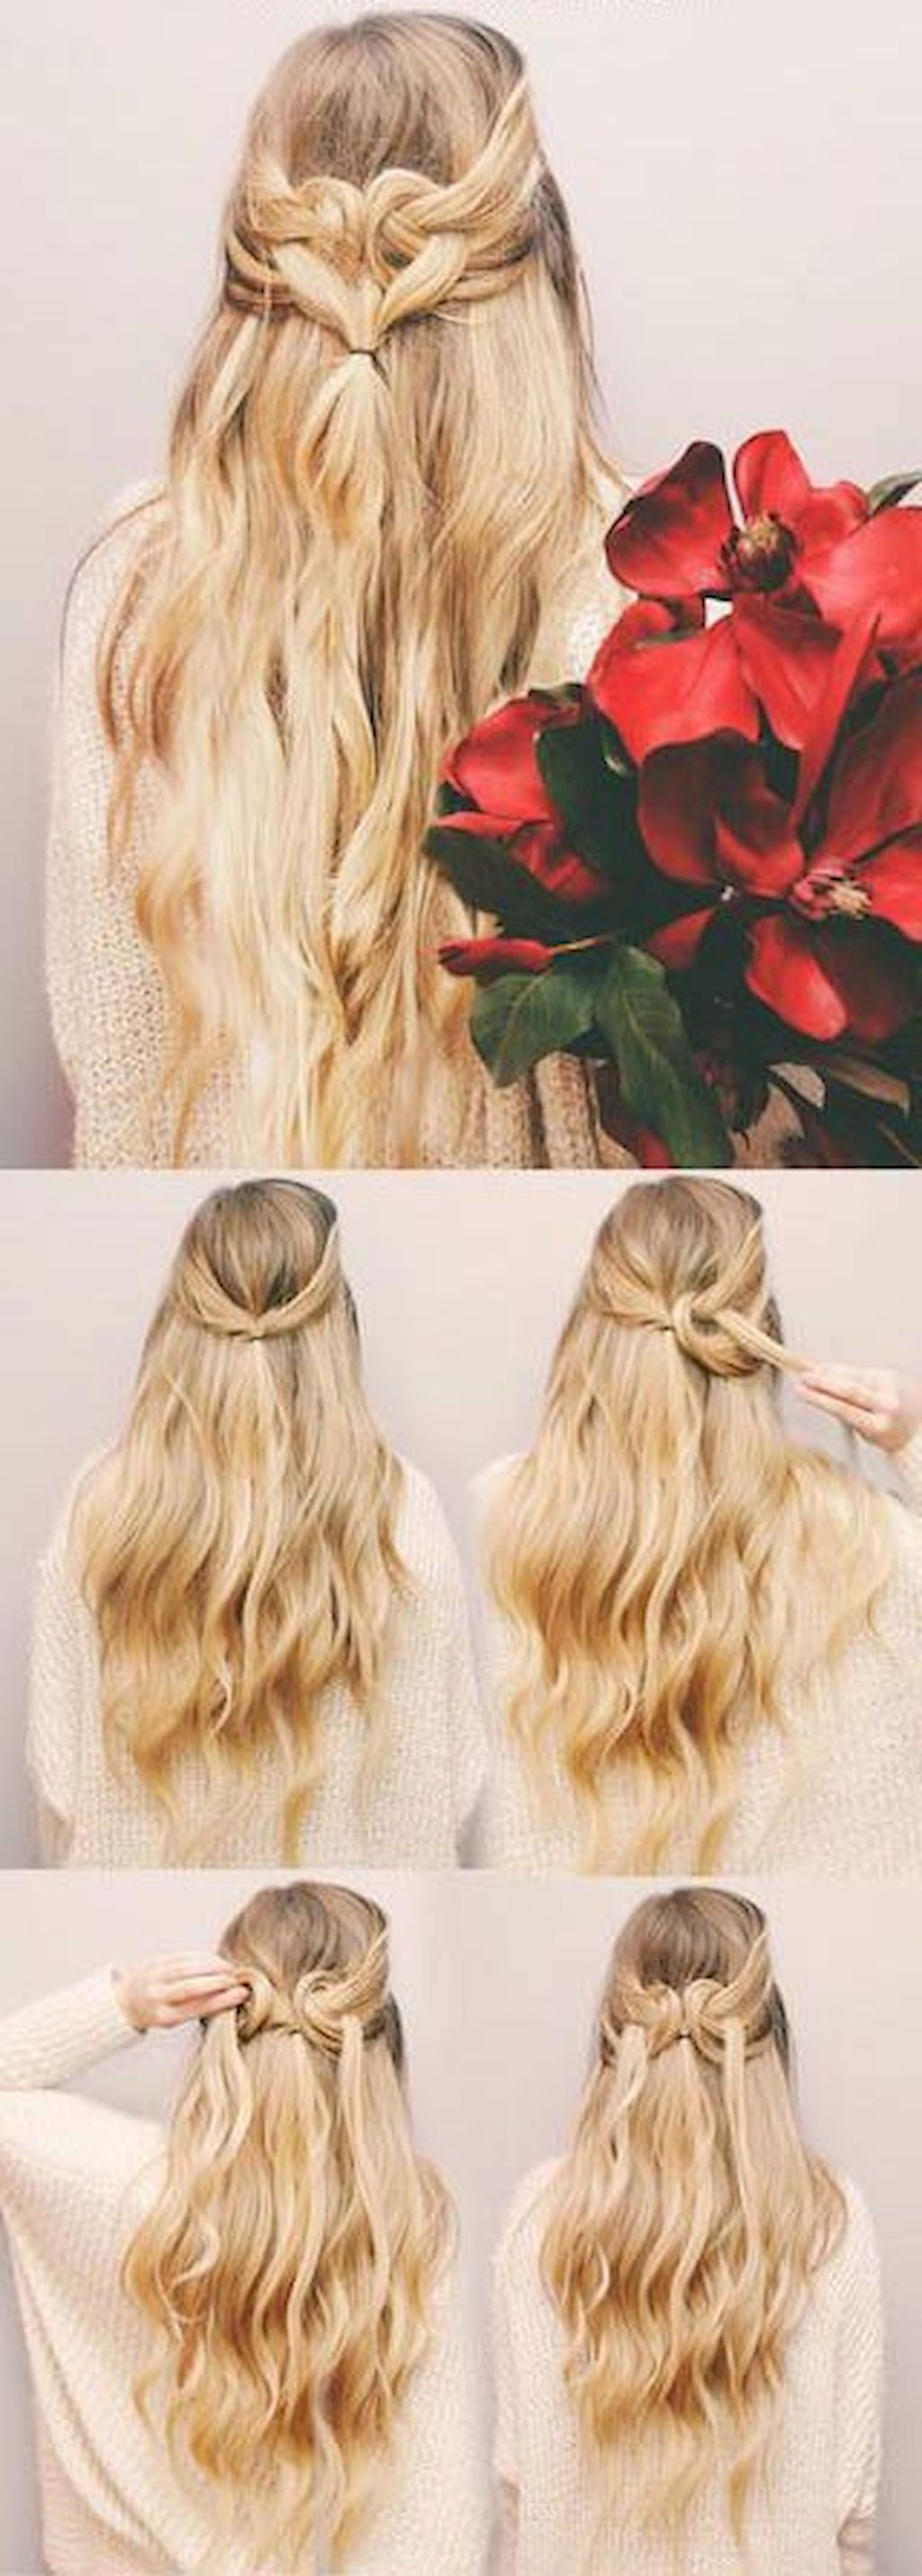 easy half up half down hairstyles for every occasion hair and